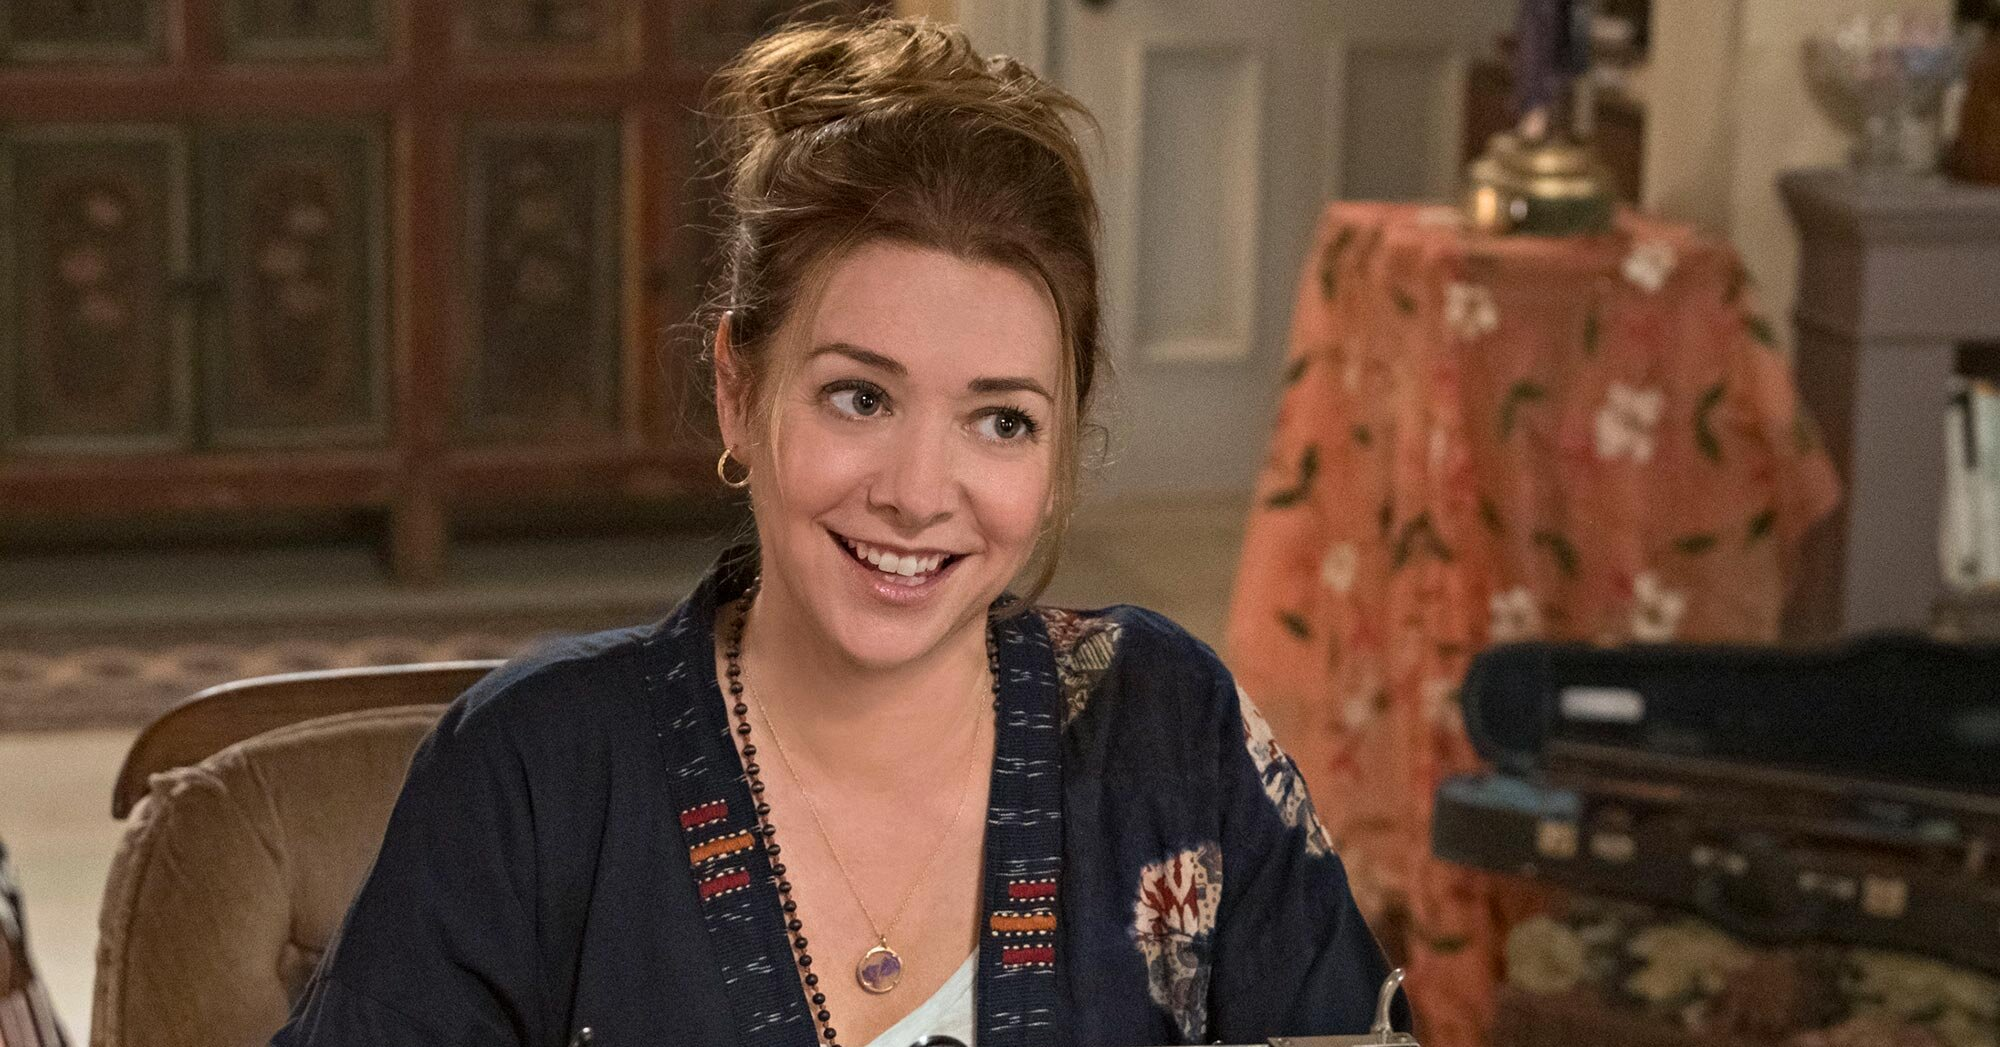 Get a first look at Alyson Hannigan's spirited family adventure 'Flora & Ulysses'